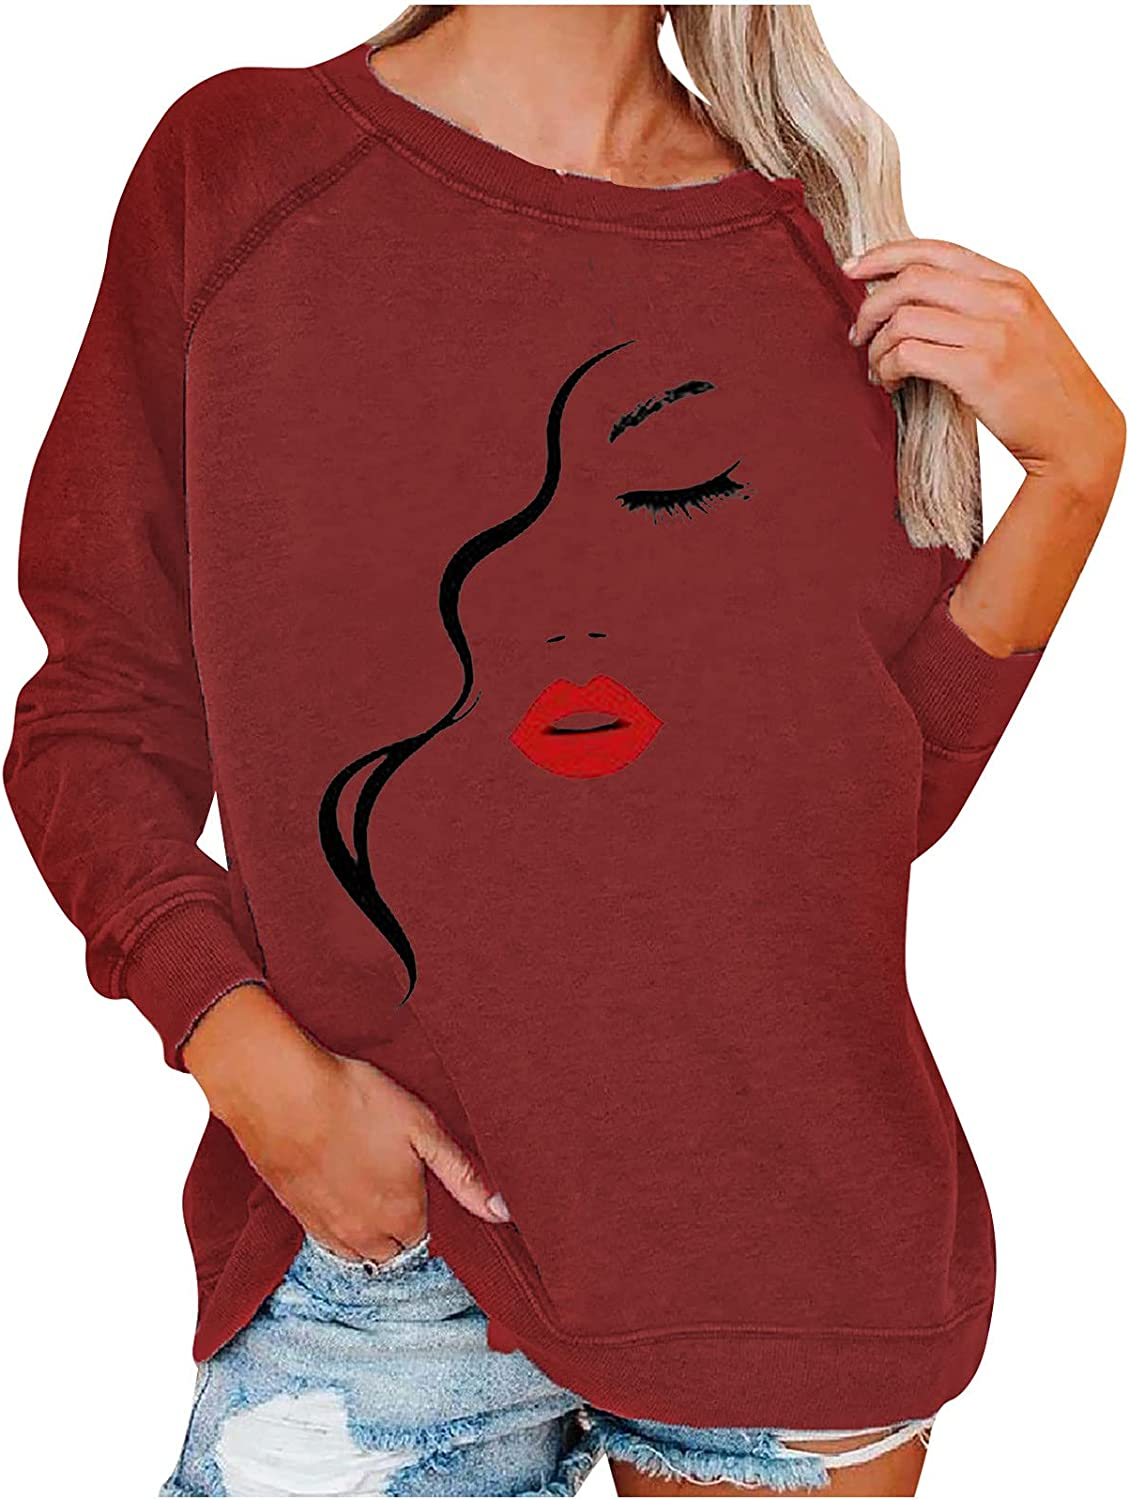 Womens Fashion Crewneck Sweatshirts Sleeve Shipping included Credence Pullover Long Casual